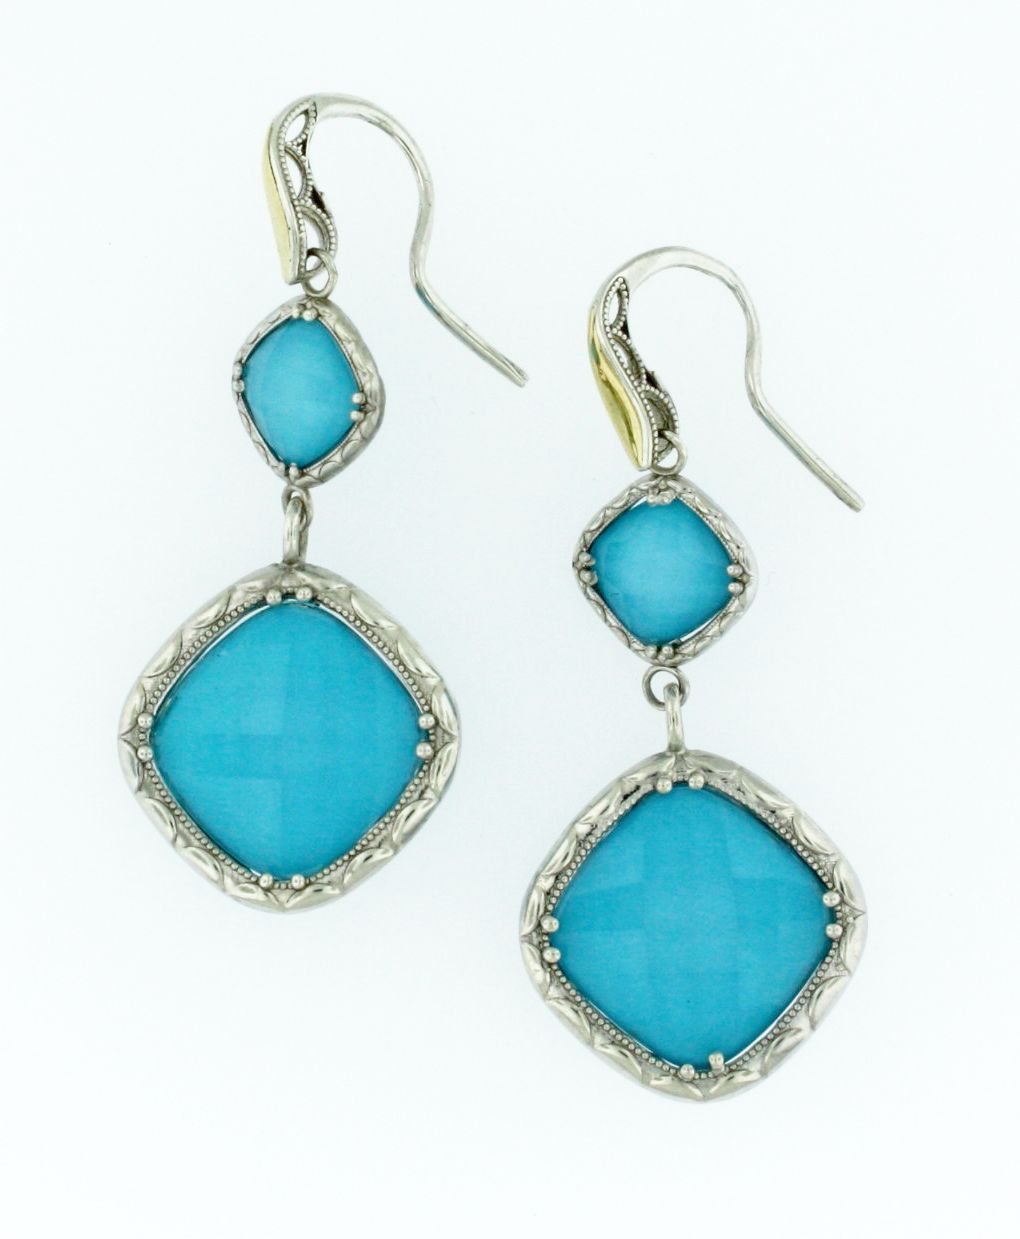 Clear Quartz over Neolite Turquoise Briolette Dangle Sterling Silver and 18K Yellow Gold Earrings by Tacori